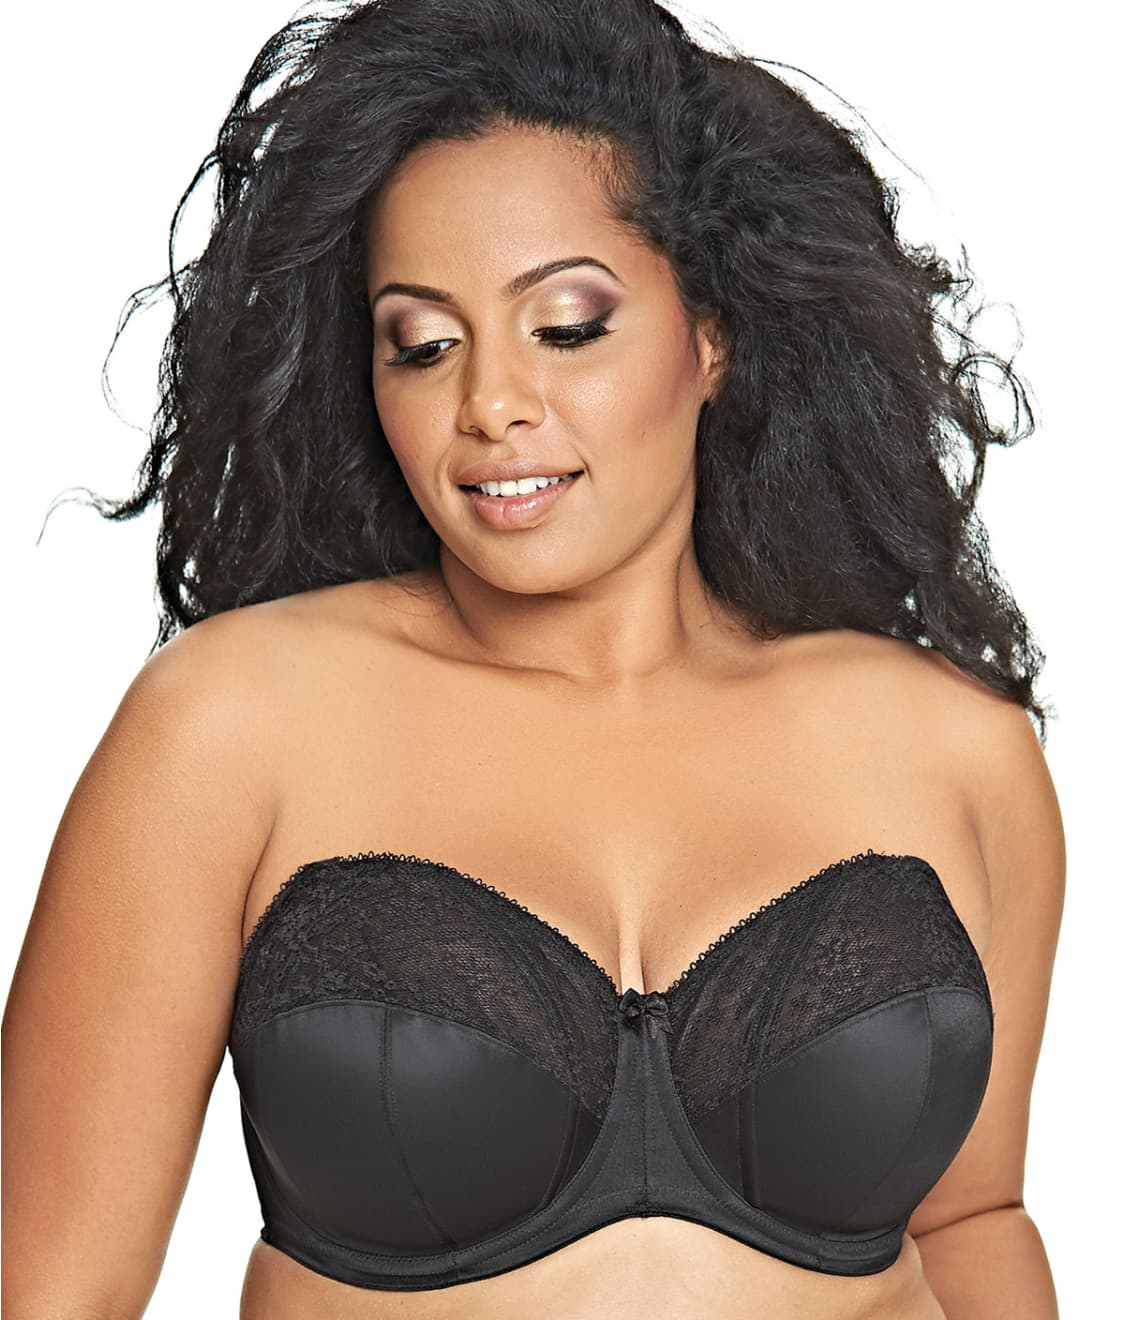 Strapless Bras Convertible Bare Necessities V Invisible Bra Ear Wing Seamless Silikon Sillicon Push Up Goddess Adelaide